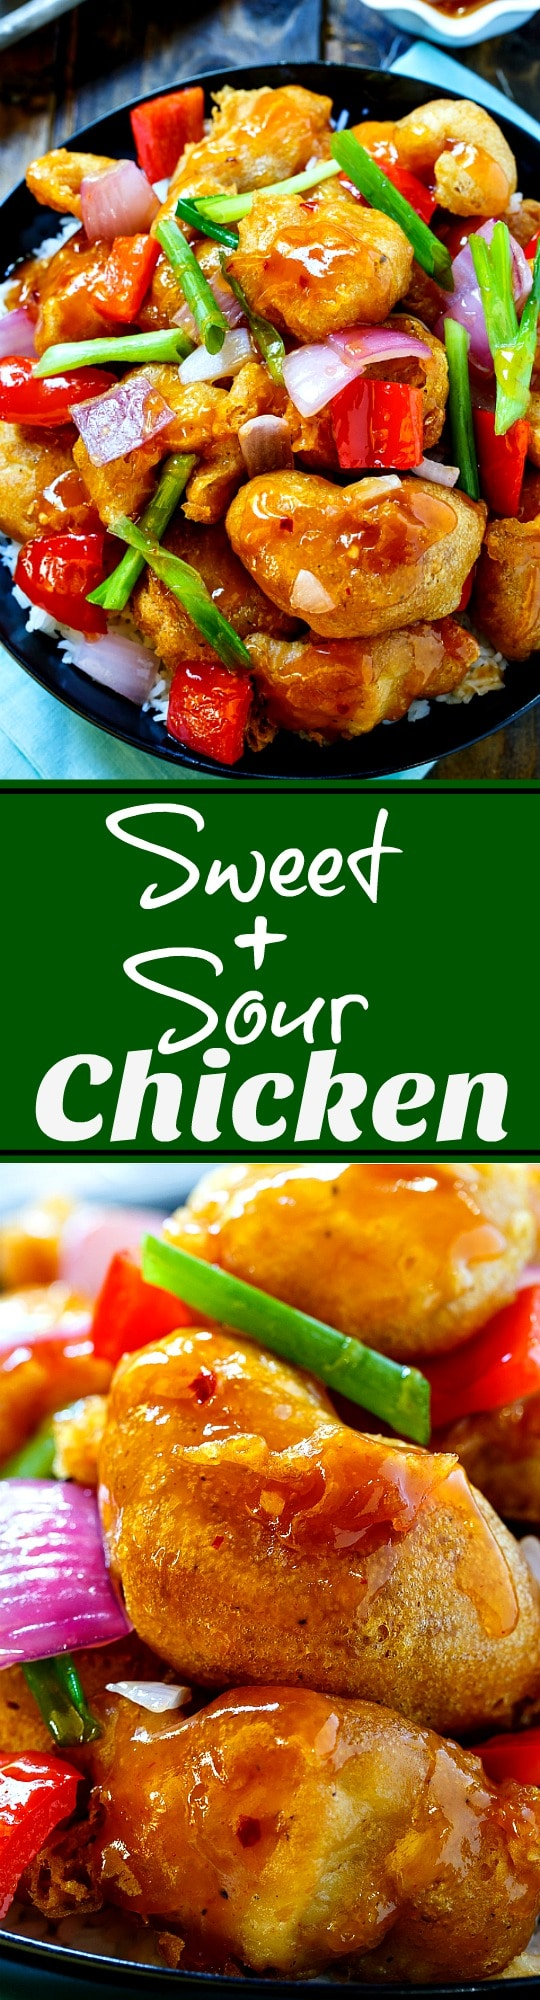 Sweet and Sour Chicken- better than takeout!